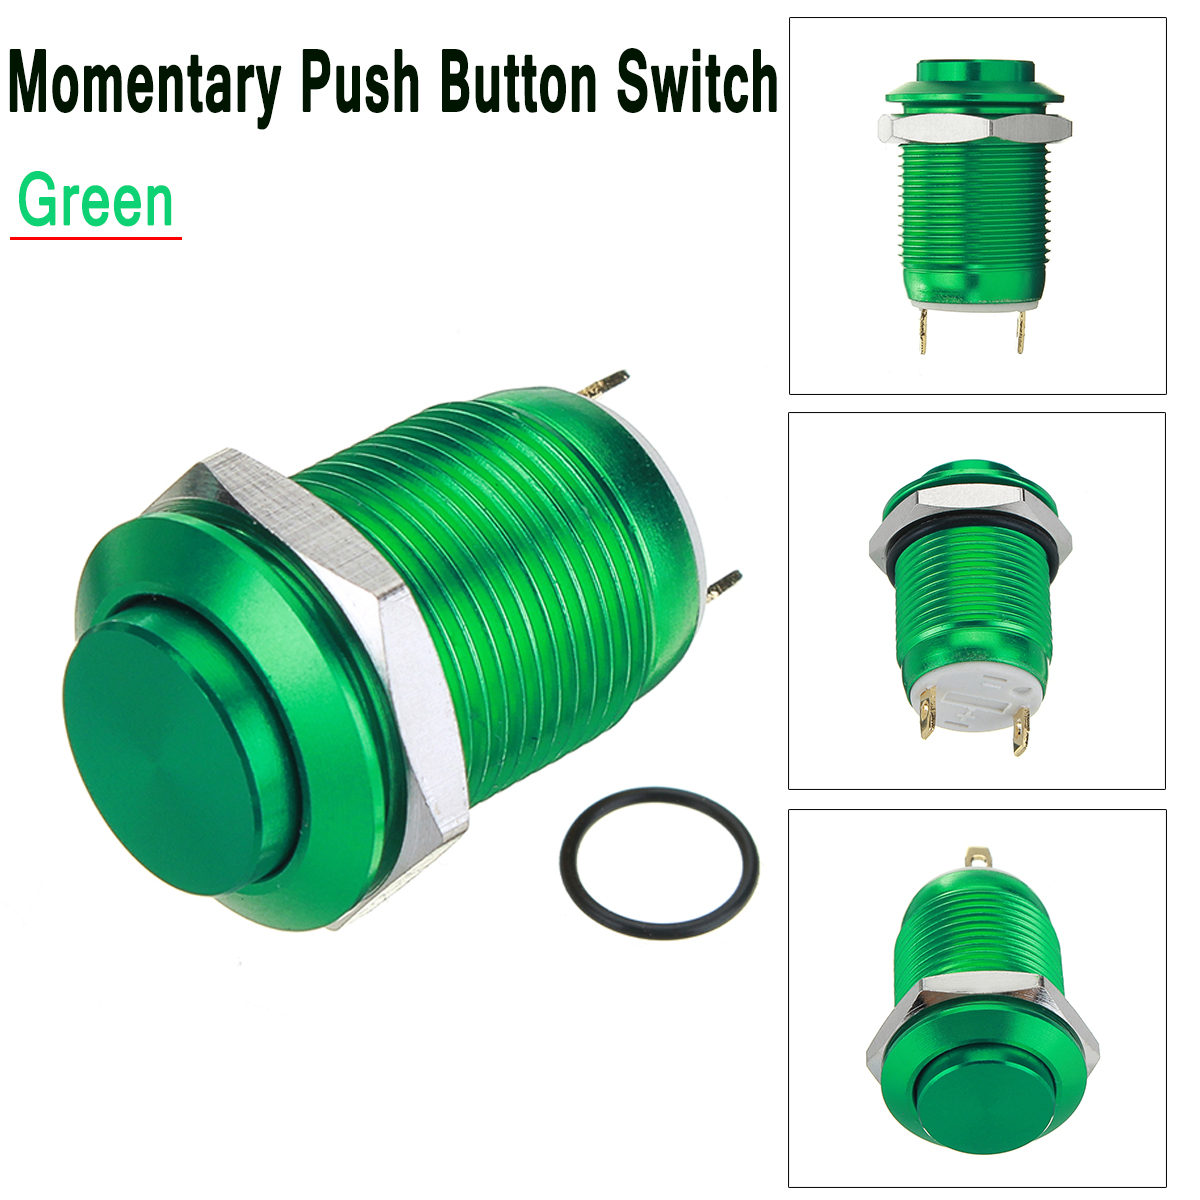 Mini Stainless Steel Momentary Push Button Switch 2 Pin 12mm 12v Ebay Electrical Wiring